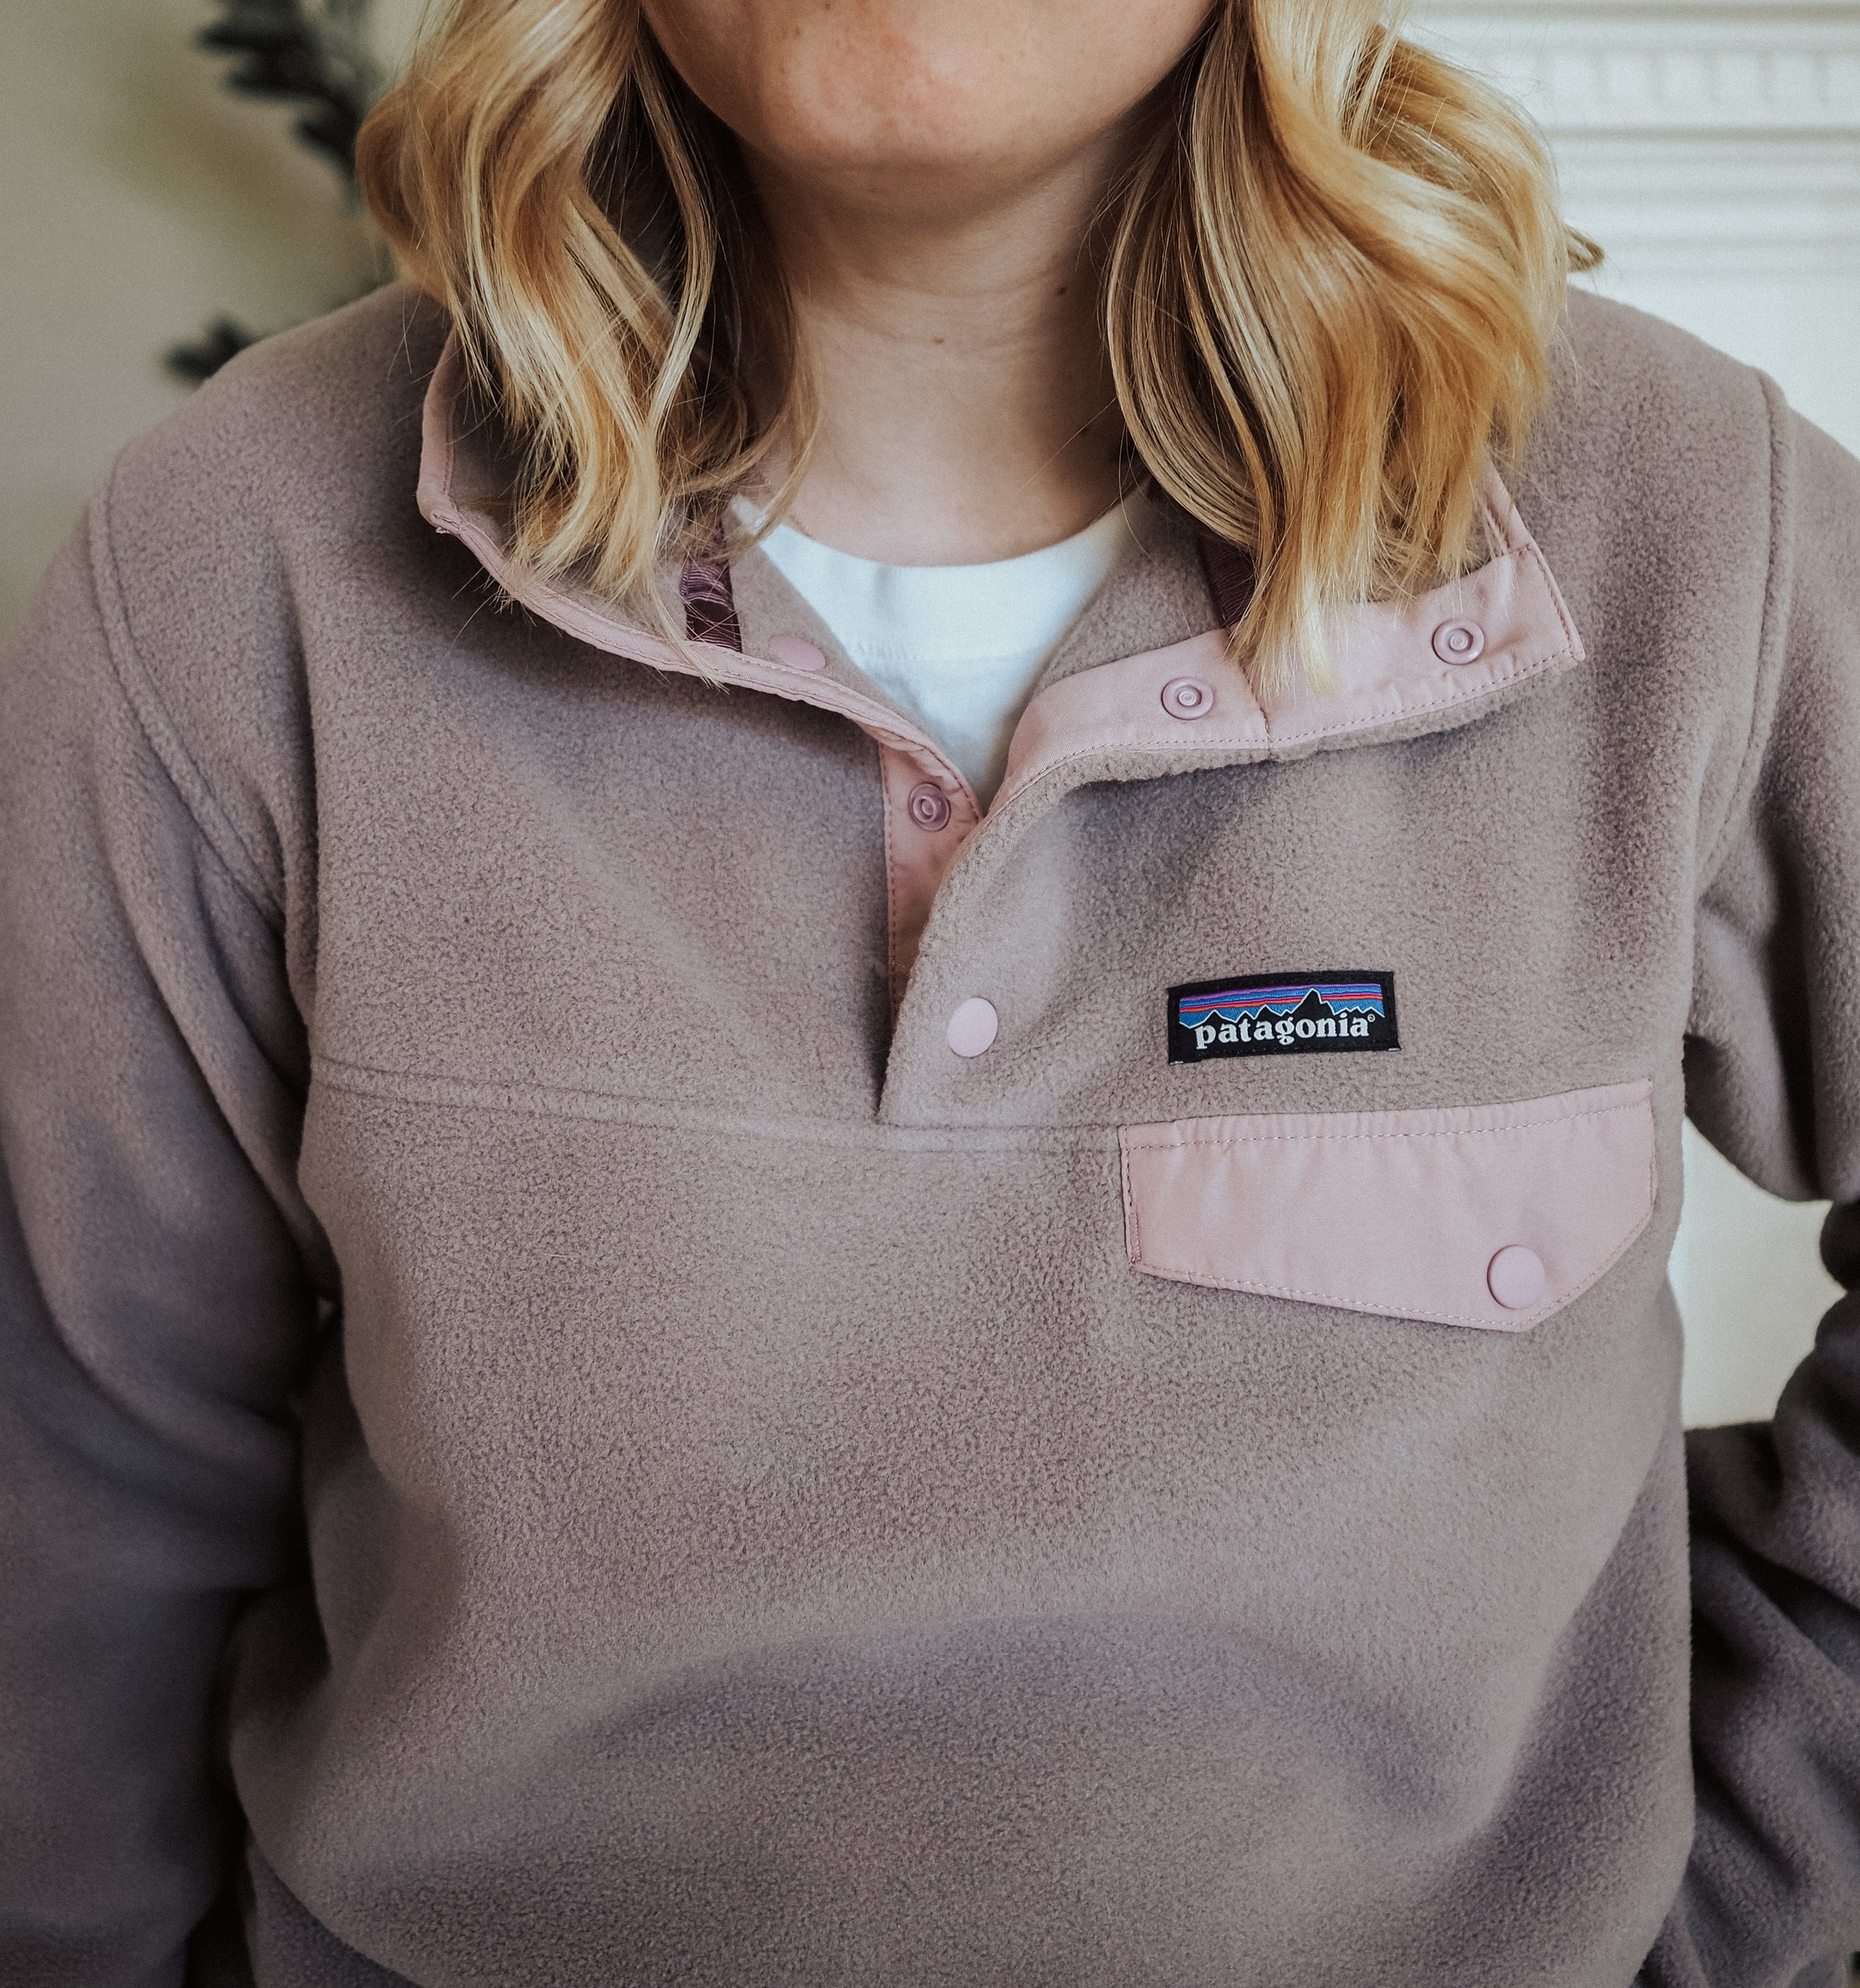 The Synchilla is a Patagonia classic. Find out the pros, cons, fit, and details of the style in this blog post review.